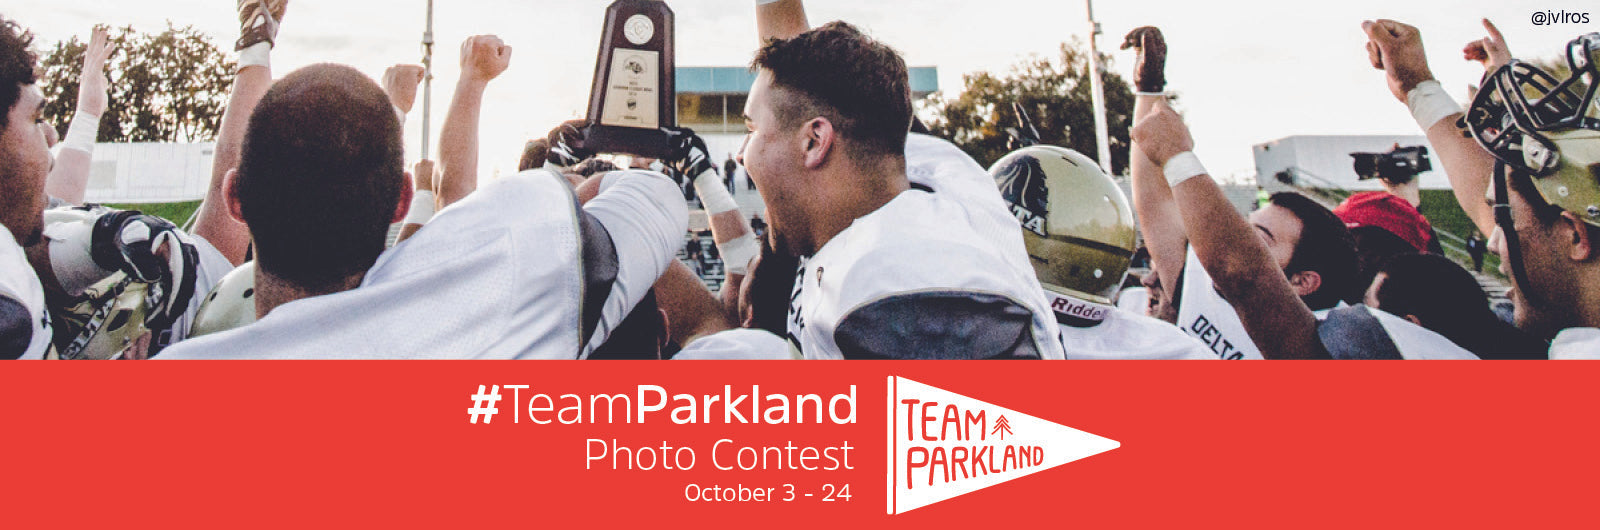 Parkland Team Spirit Photo Contest | Photo Jacob Valeros